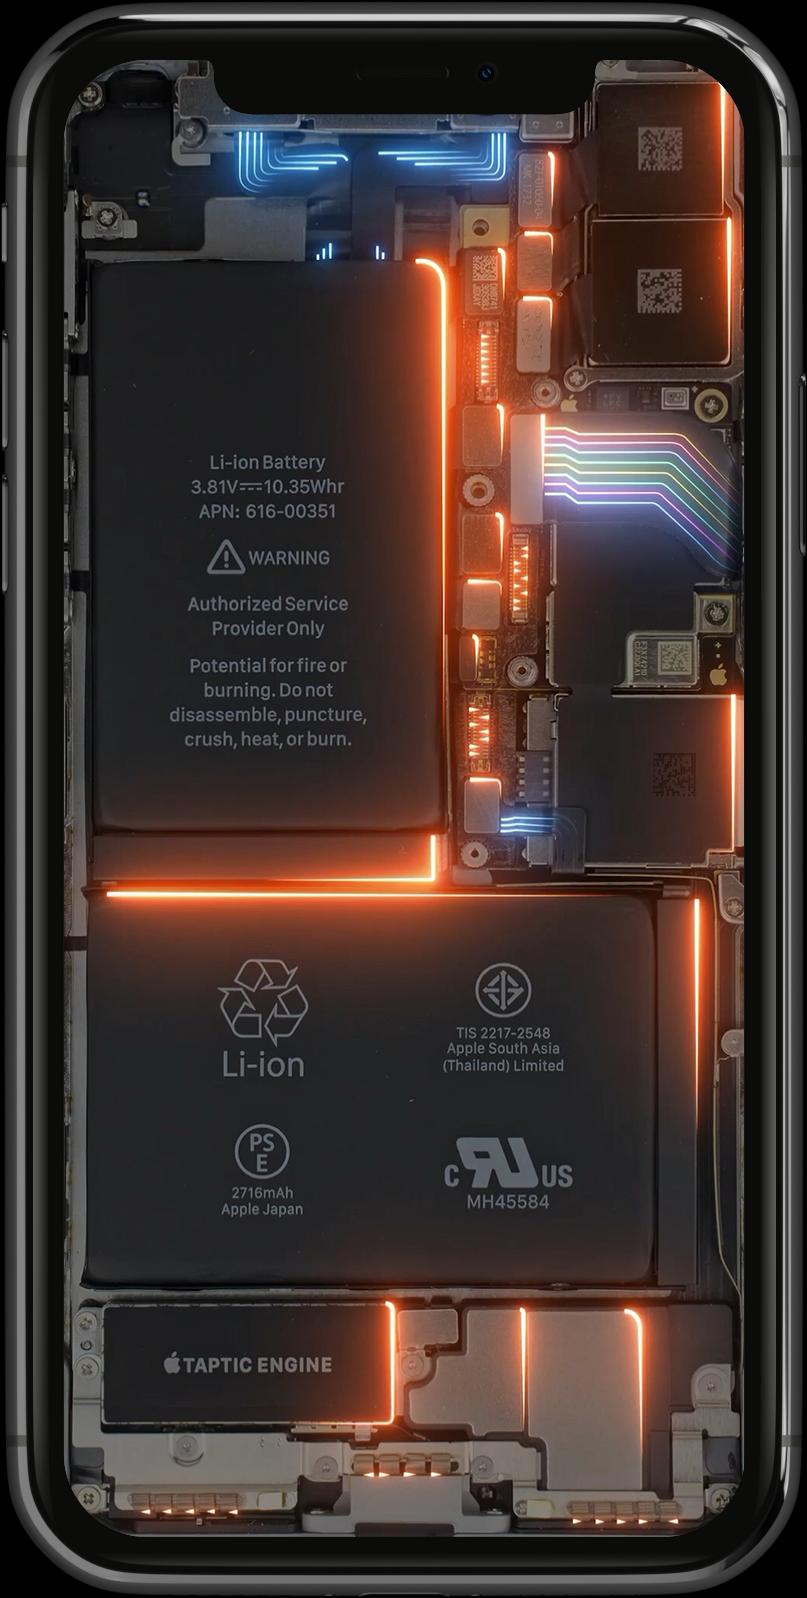 Phone Electricity Live Wallpaper For Android Apk Download